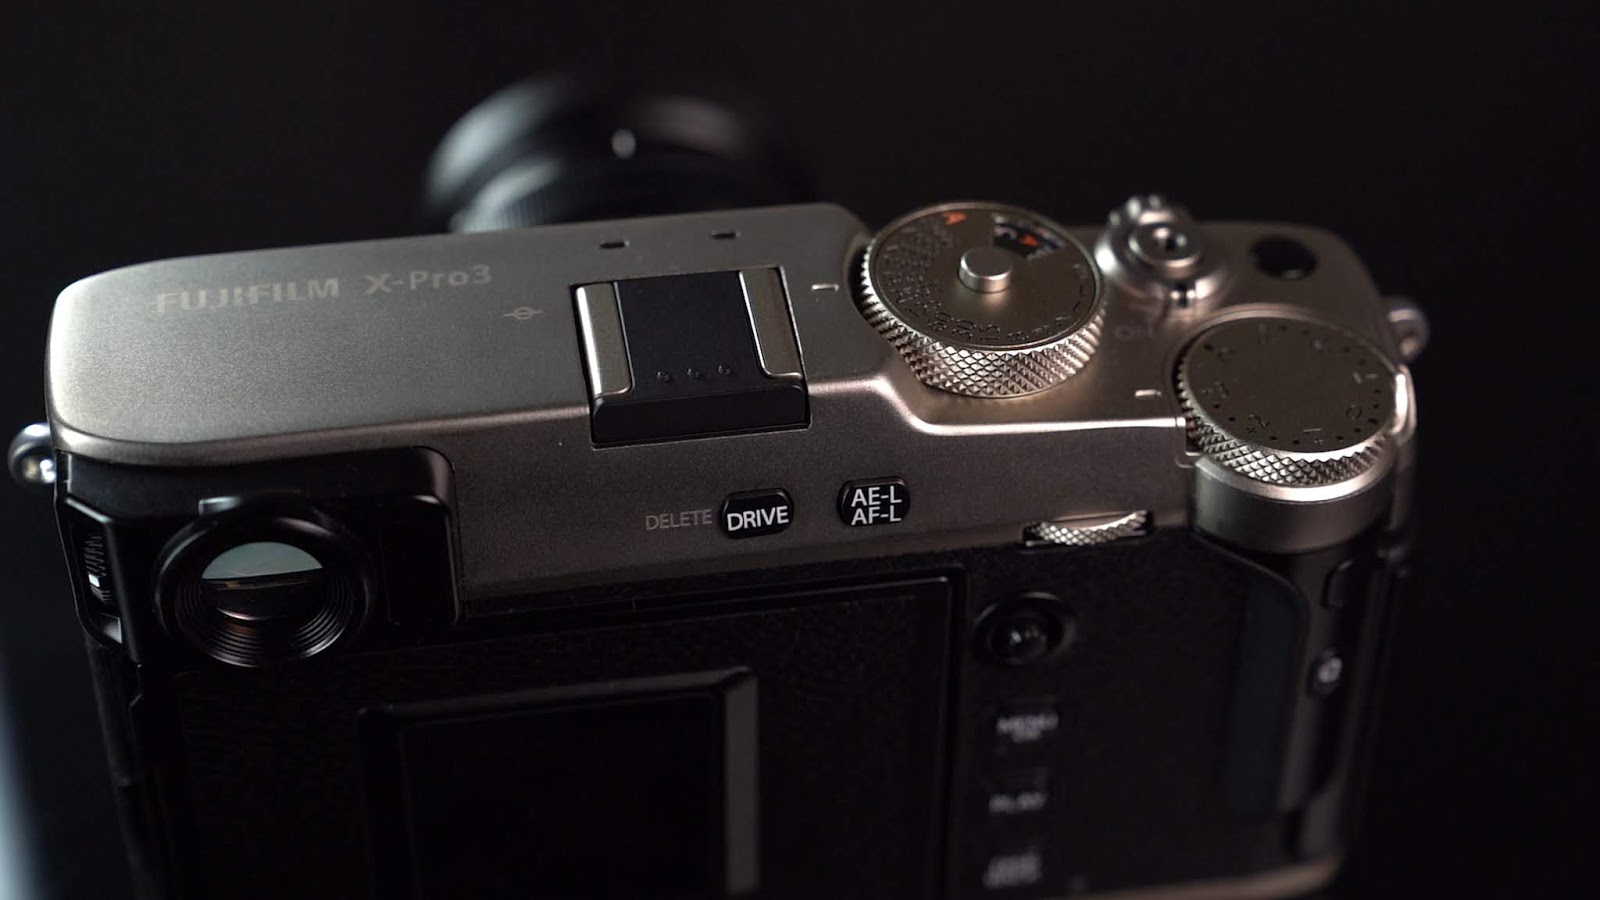 Top plate of the Fujifilm X-Pro 3